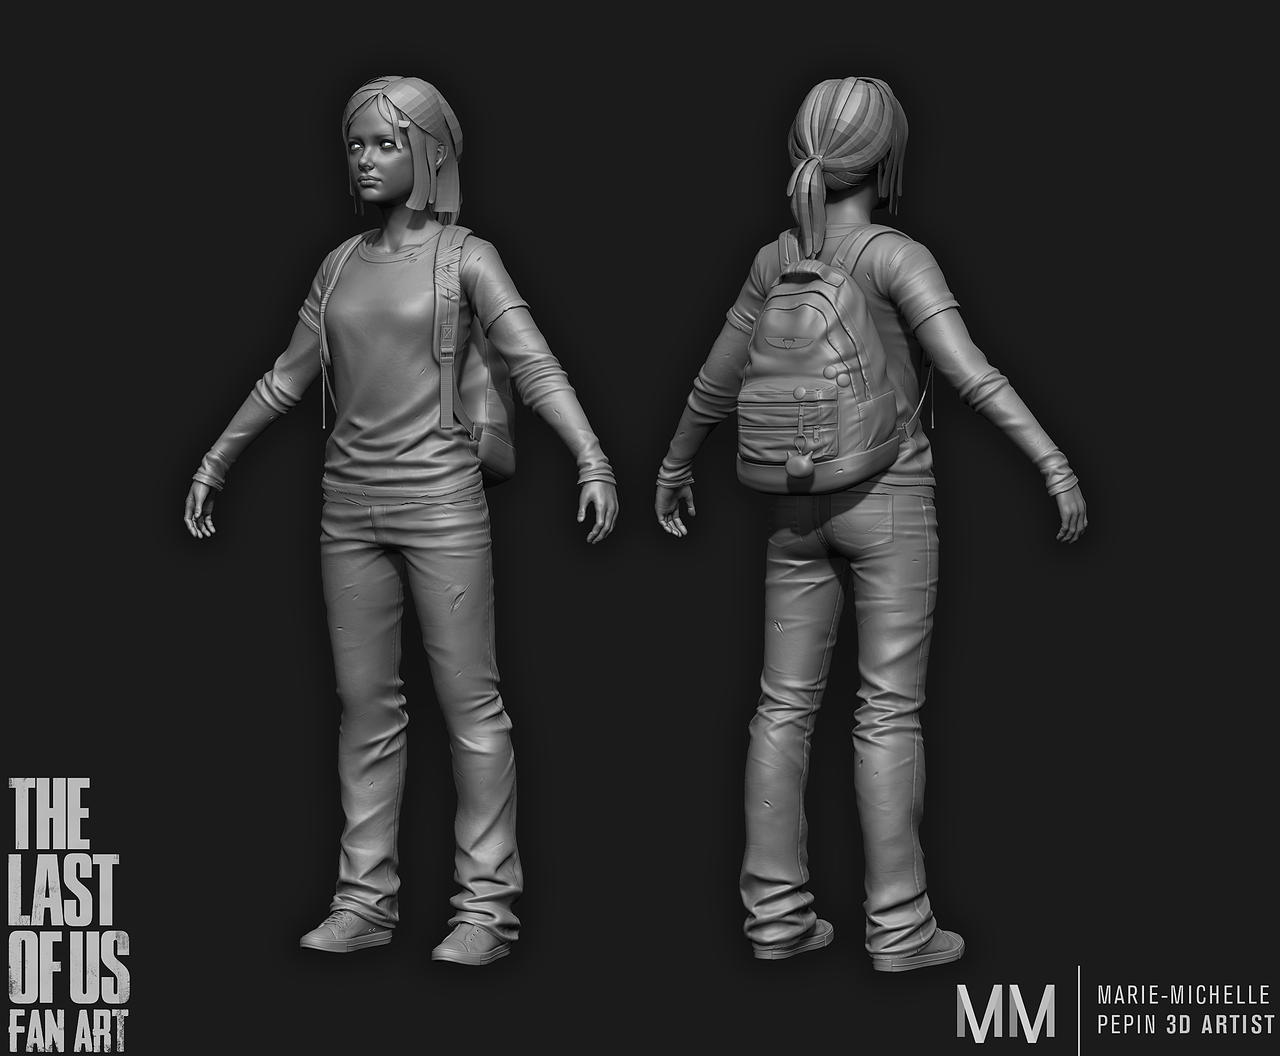 Ellie from The last of us fanart, zbrush sculpt by Azraele